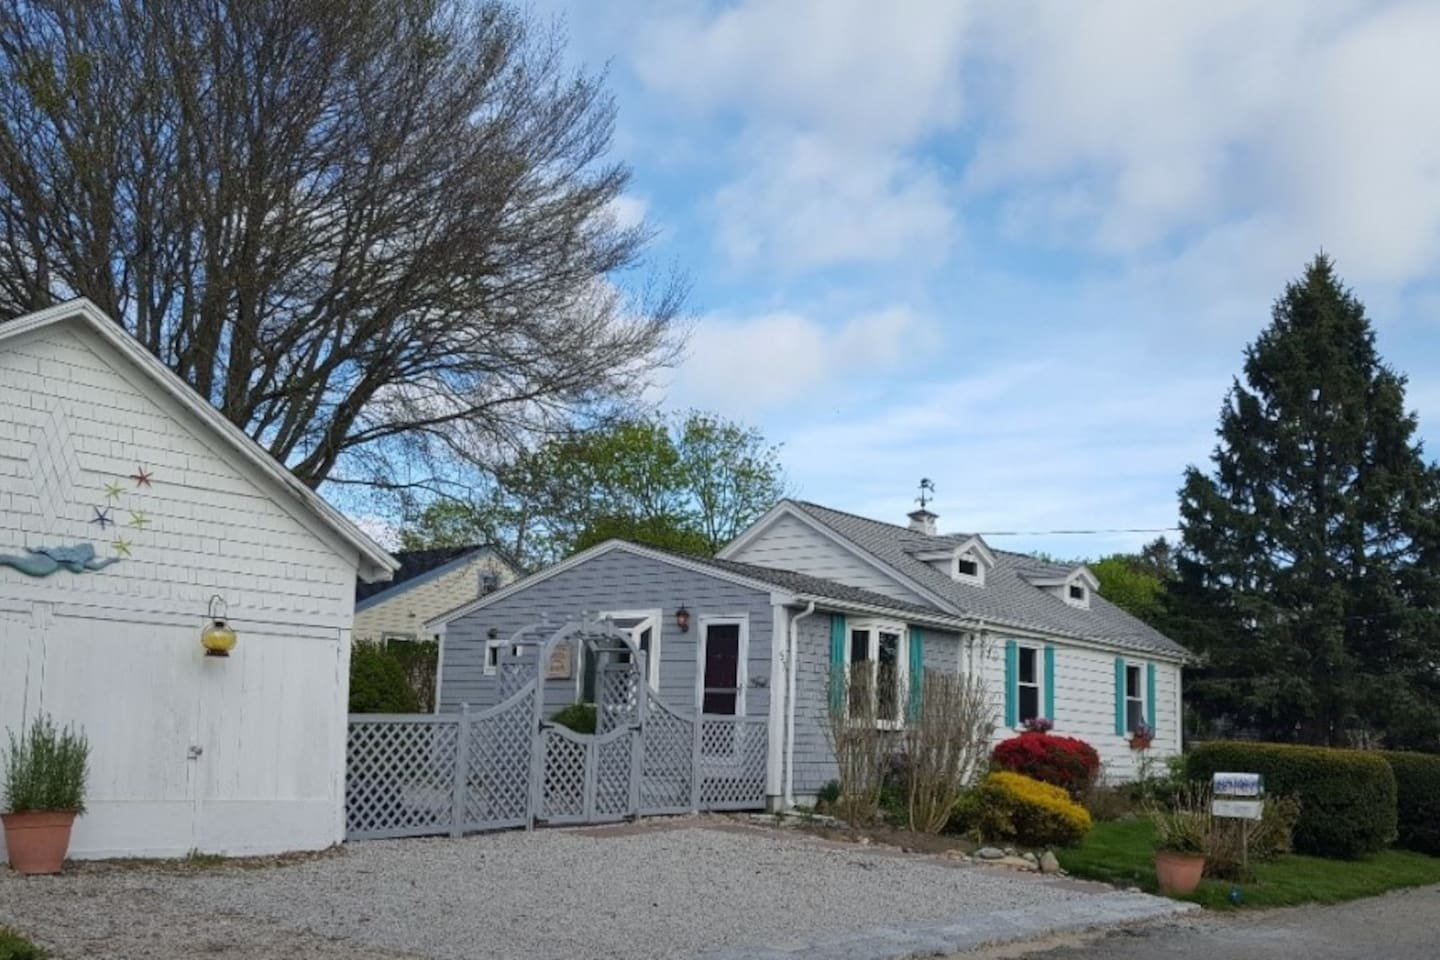 Surprising space in Port O'Call Cottage -a beach cottage paradise all on 1 level. Fenced backyard. 3 off street parking. Between two beaches and nature, not too far from downtown Newport.